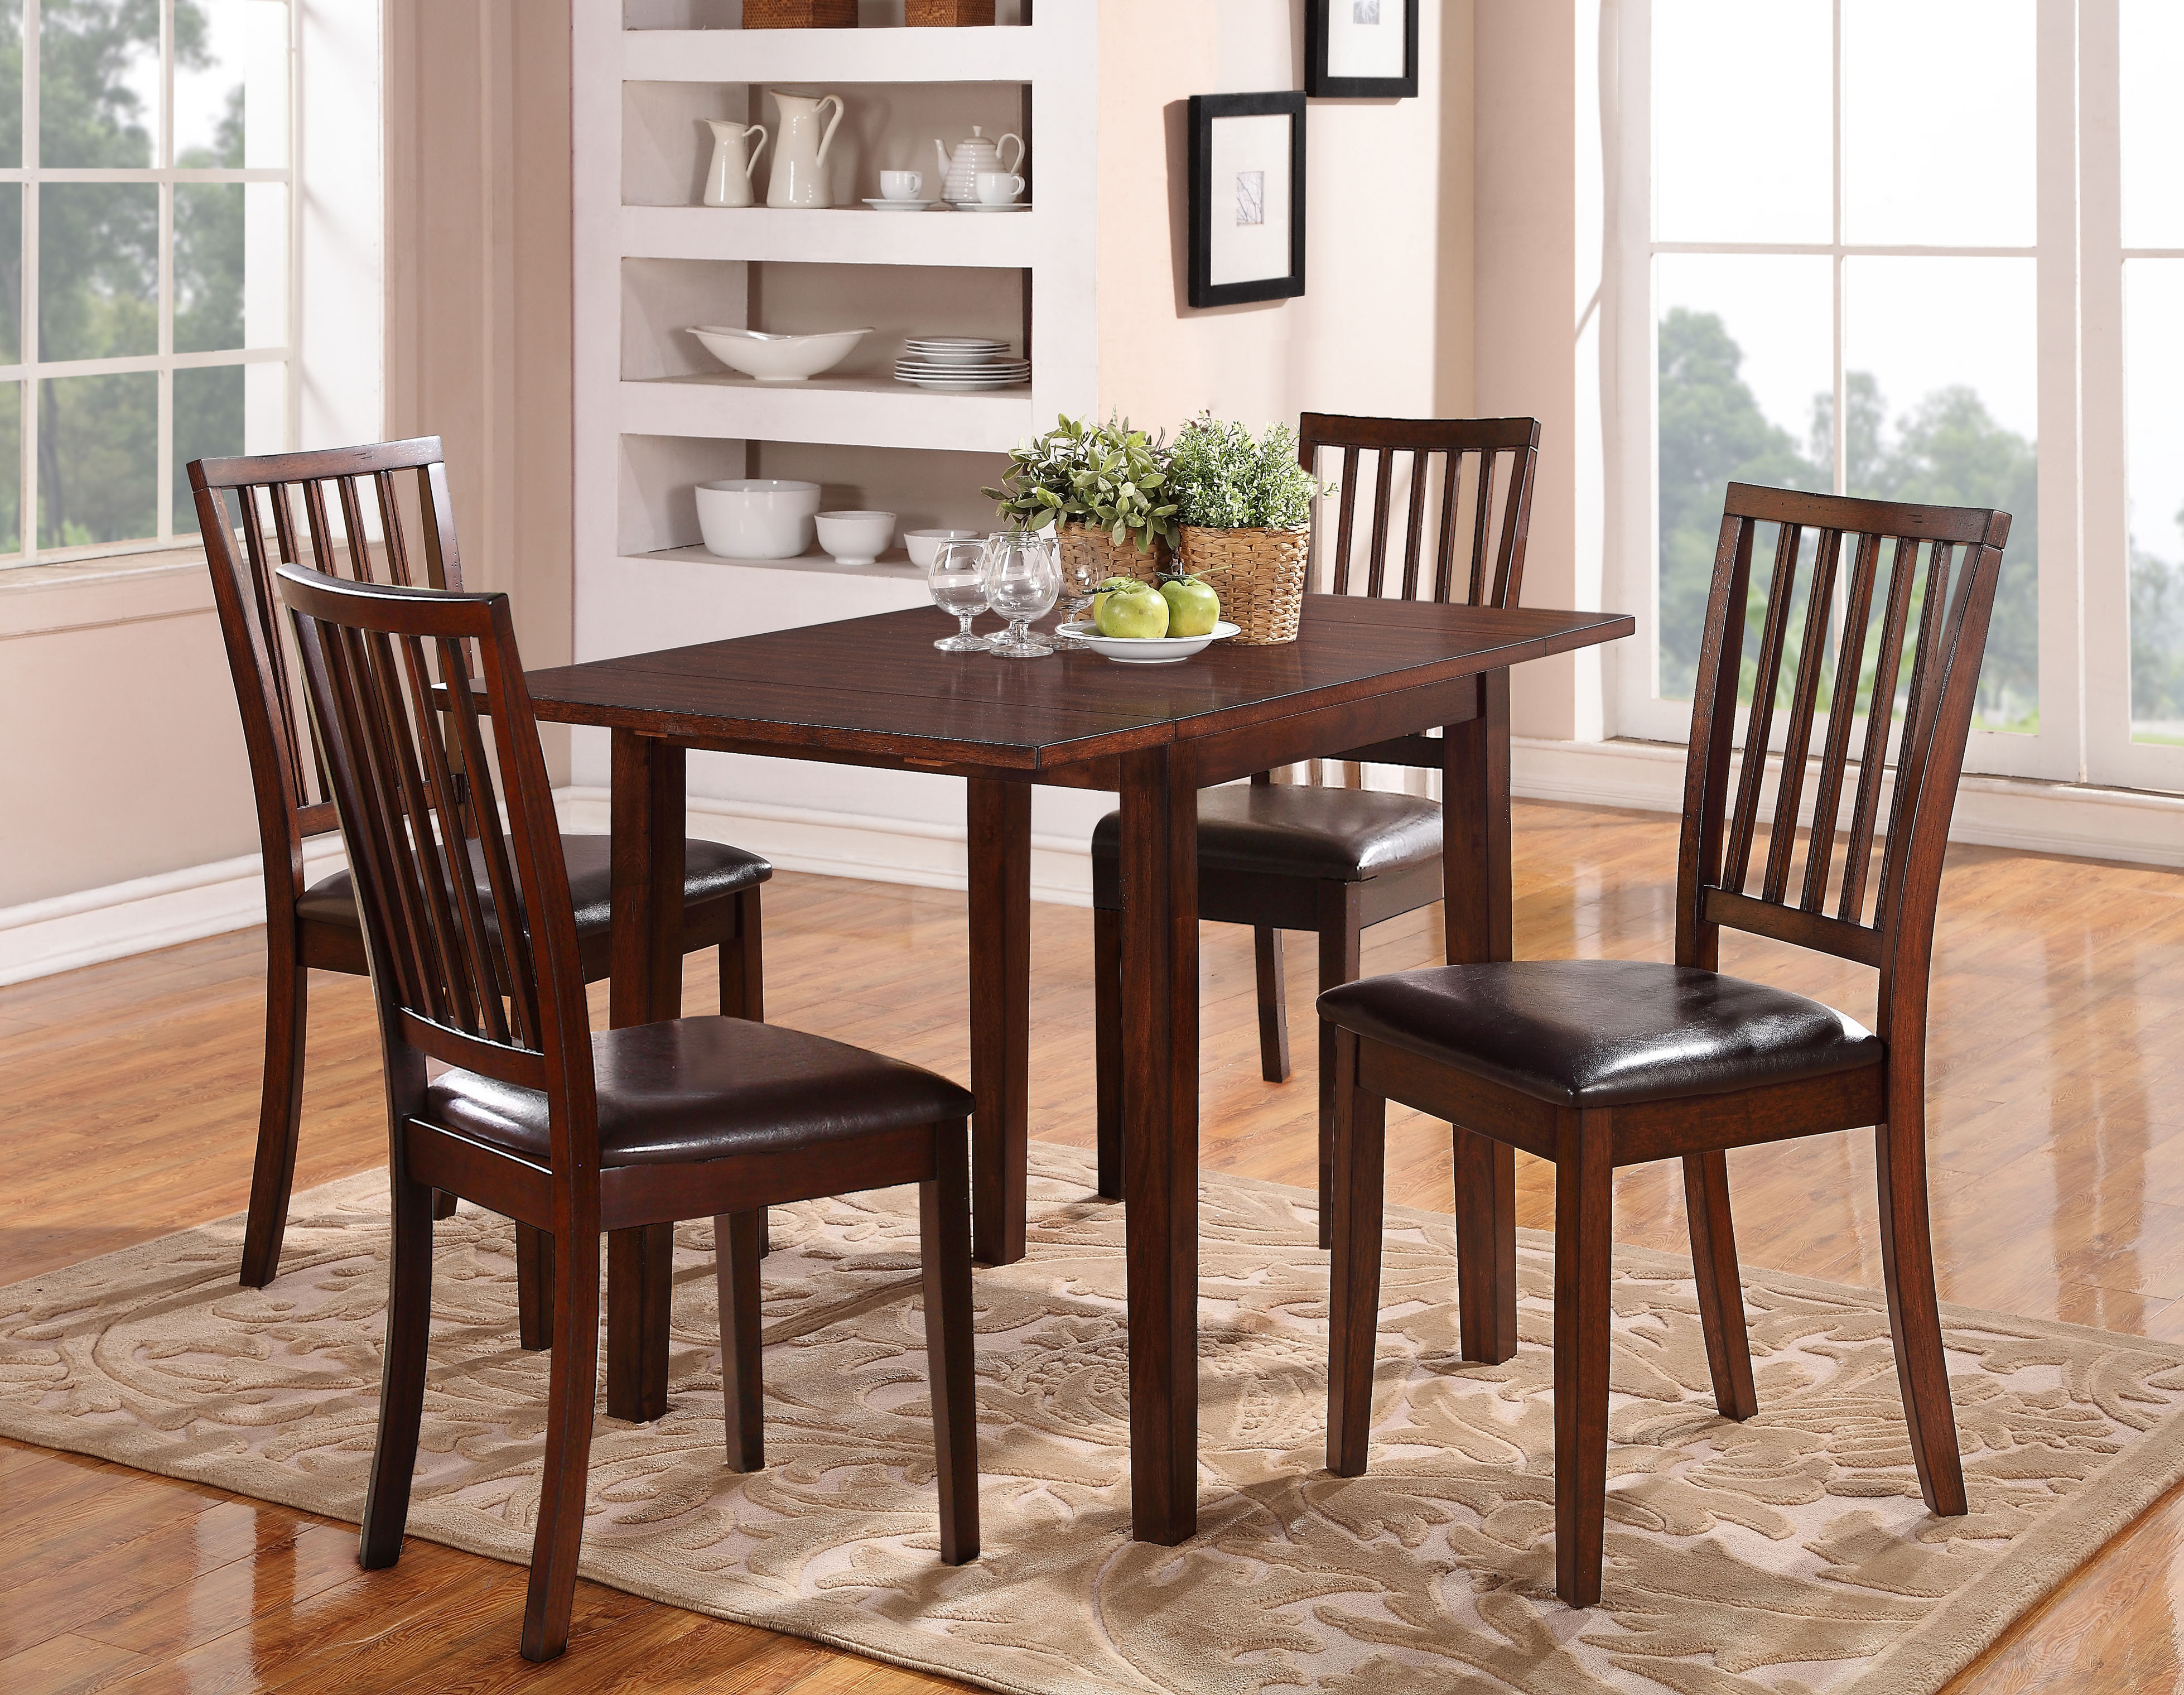 hh12078-rect-tbl-w-4-chairs